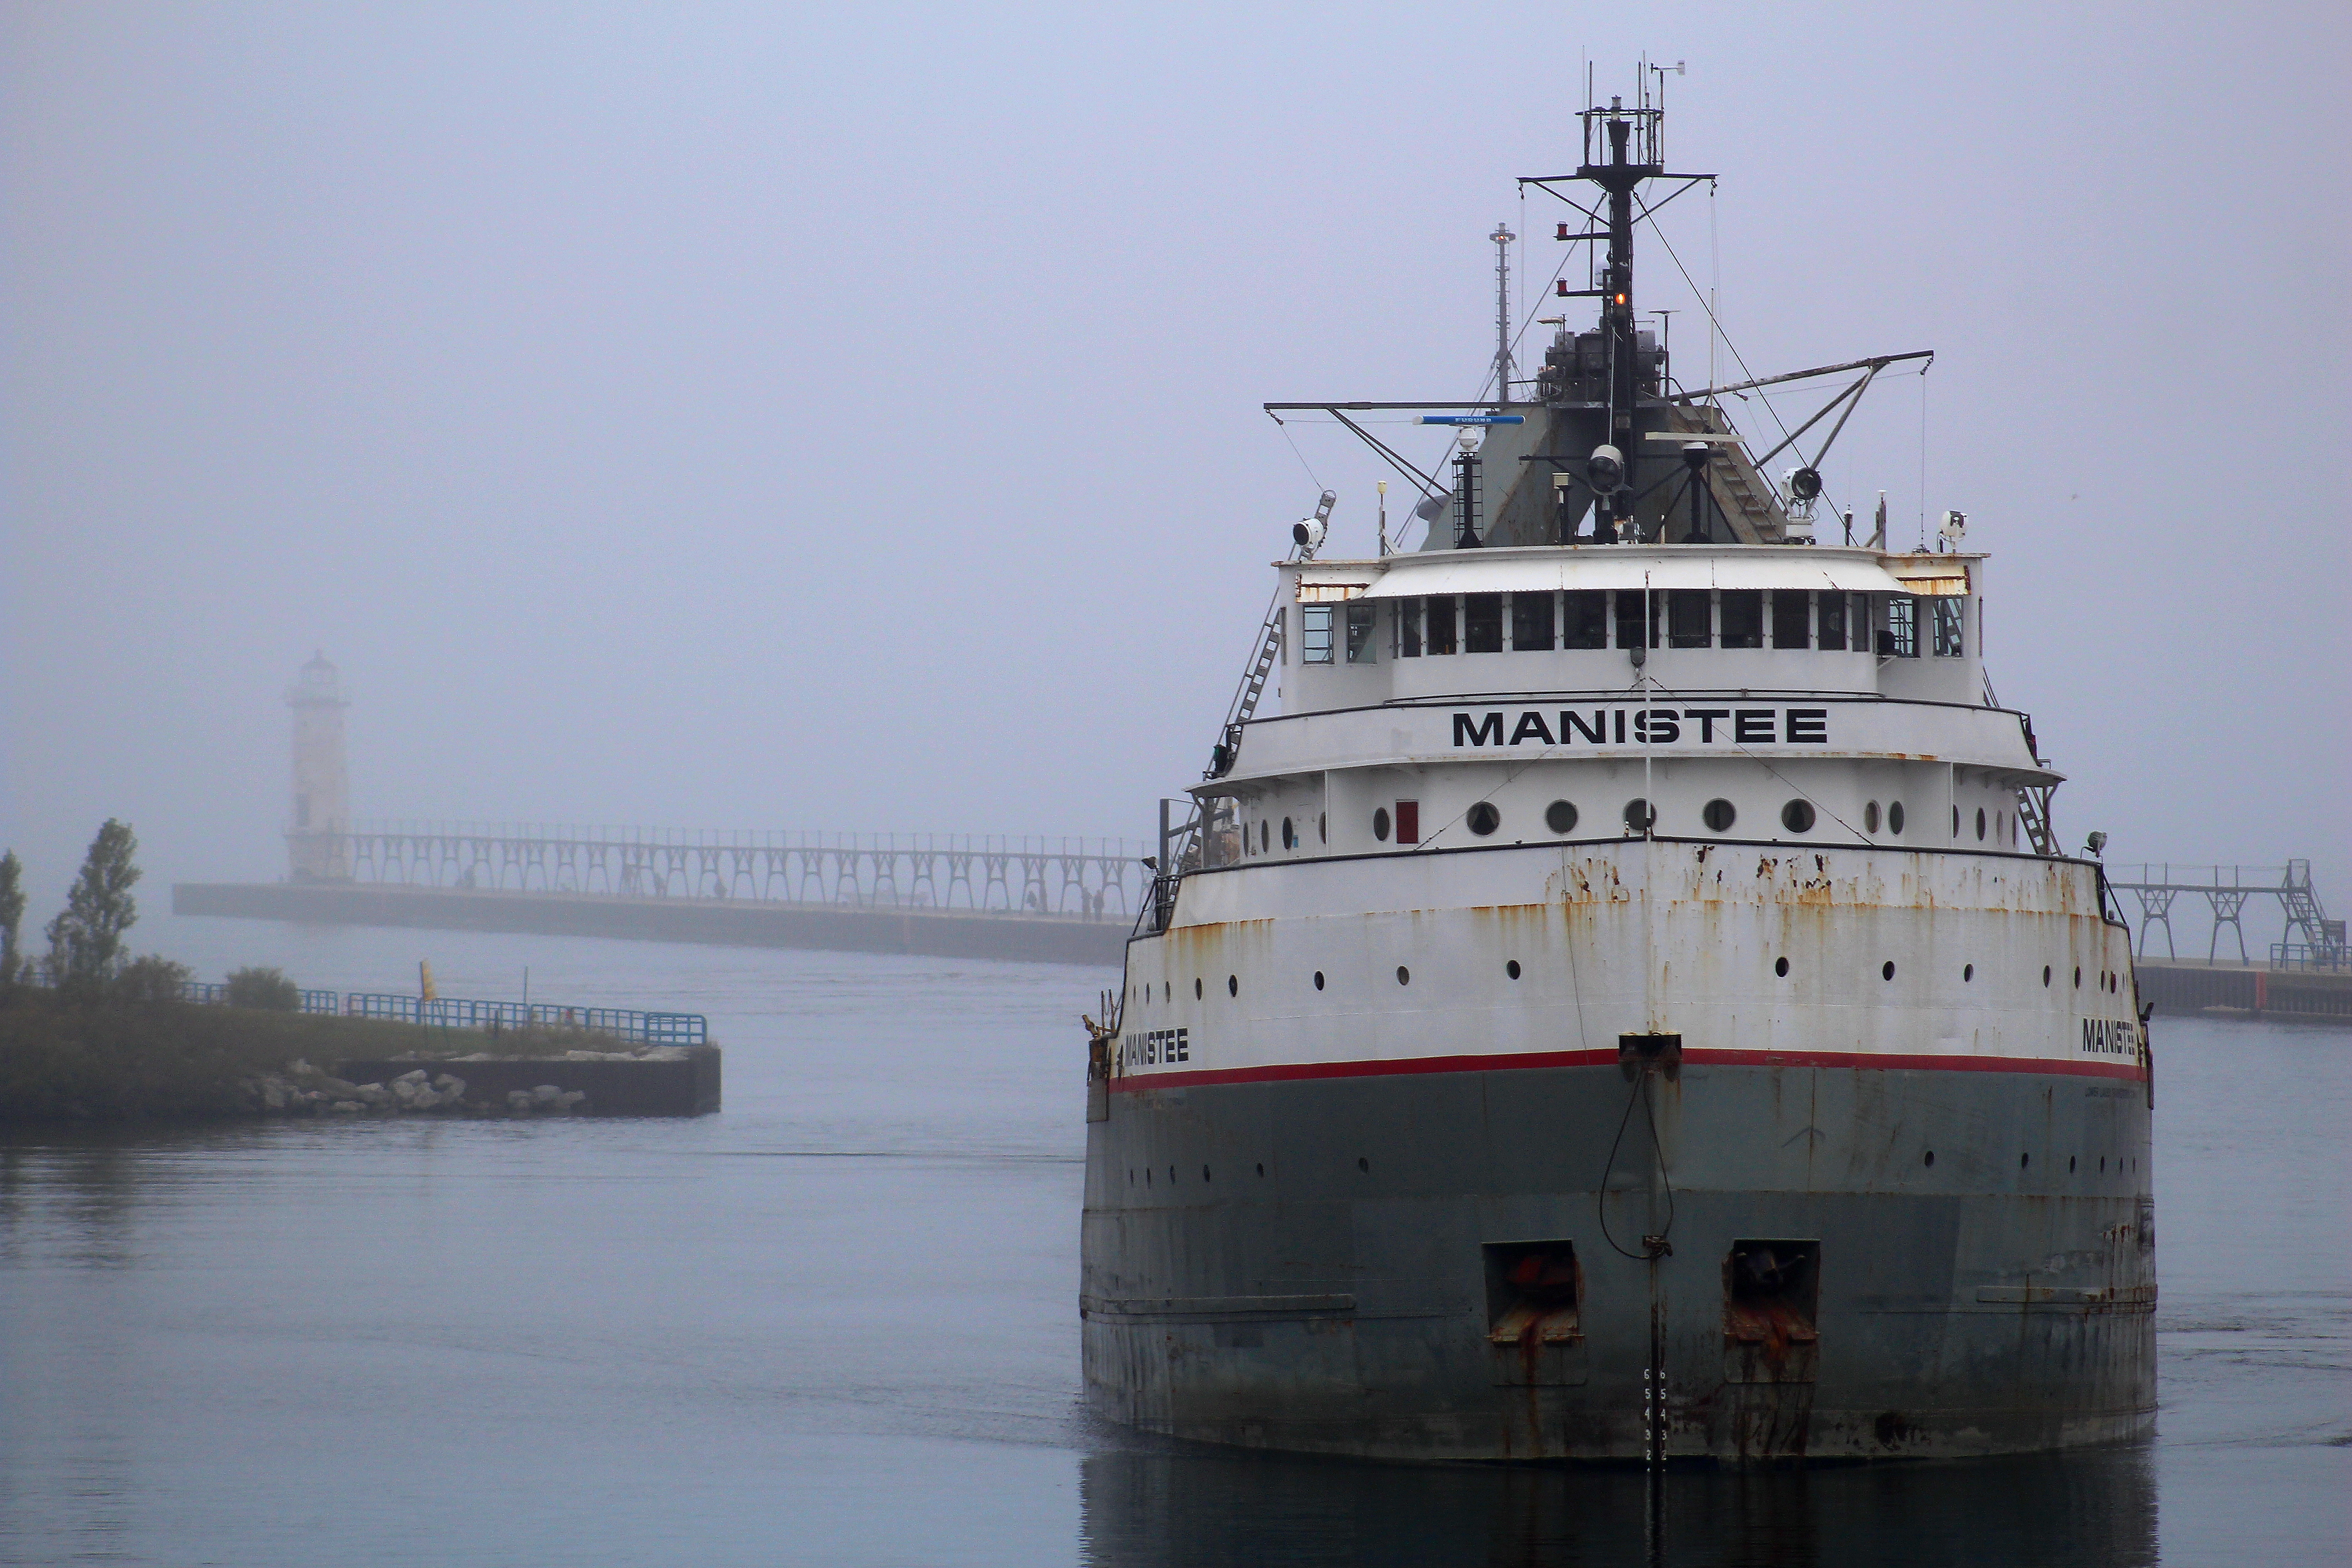 Freighter Manistee entering the Manistee River channel on a foggy day